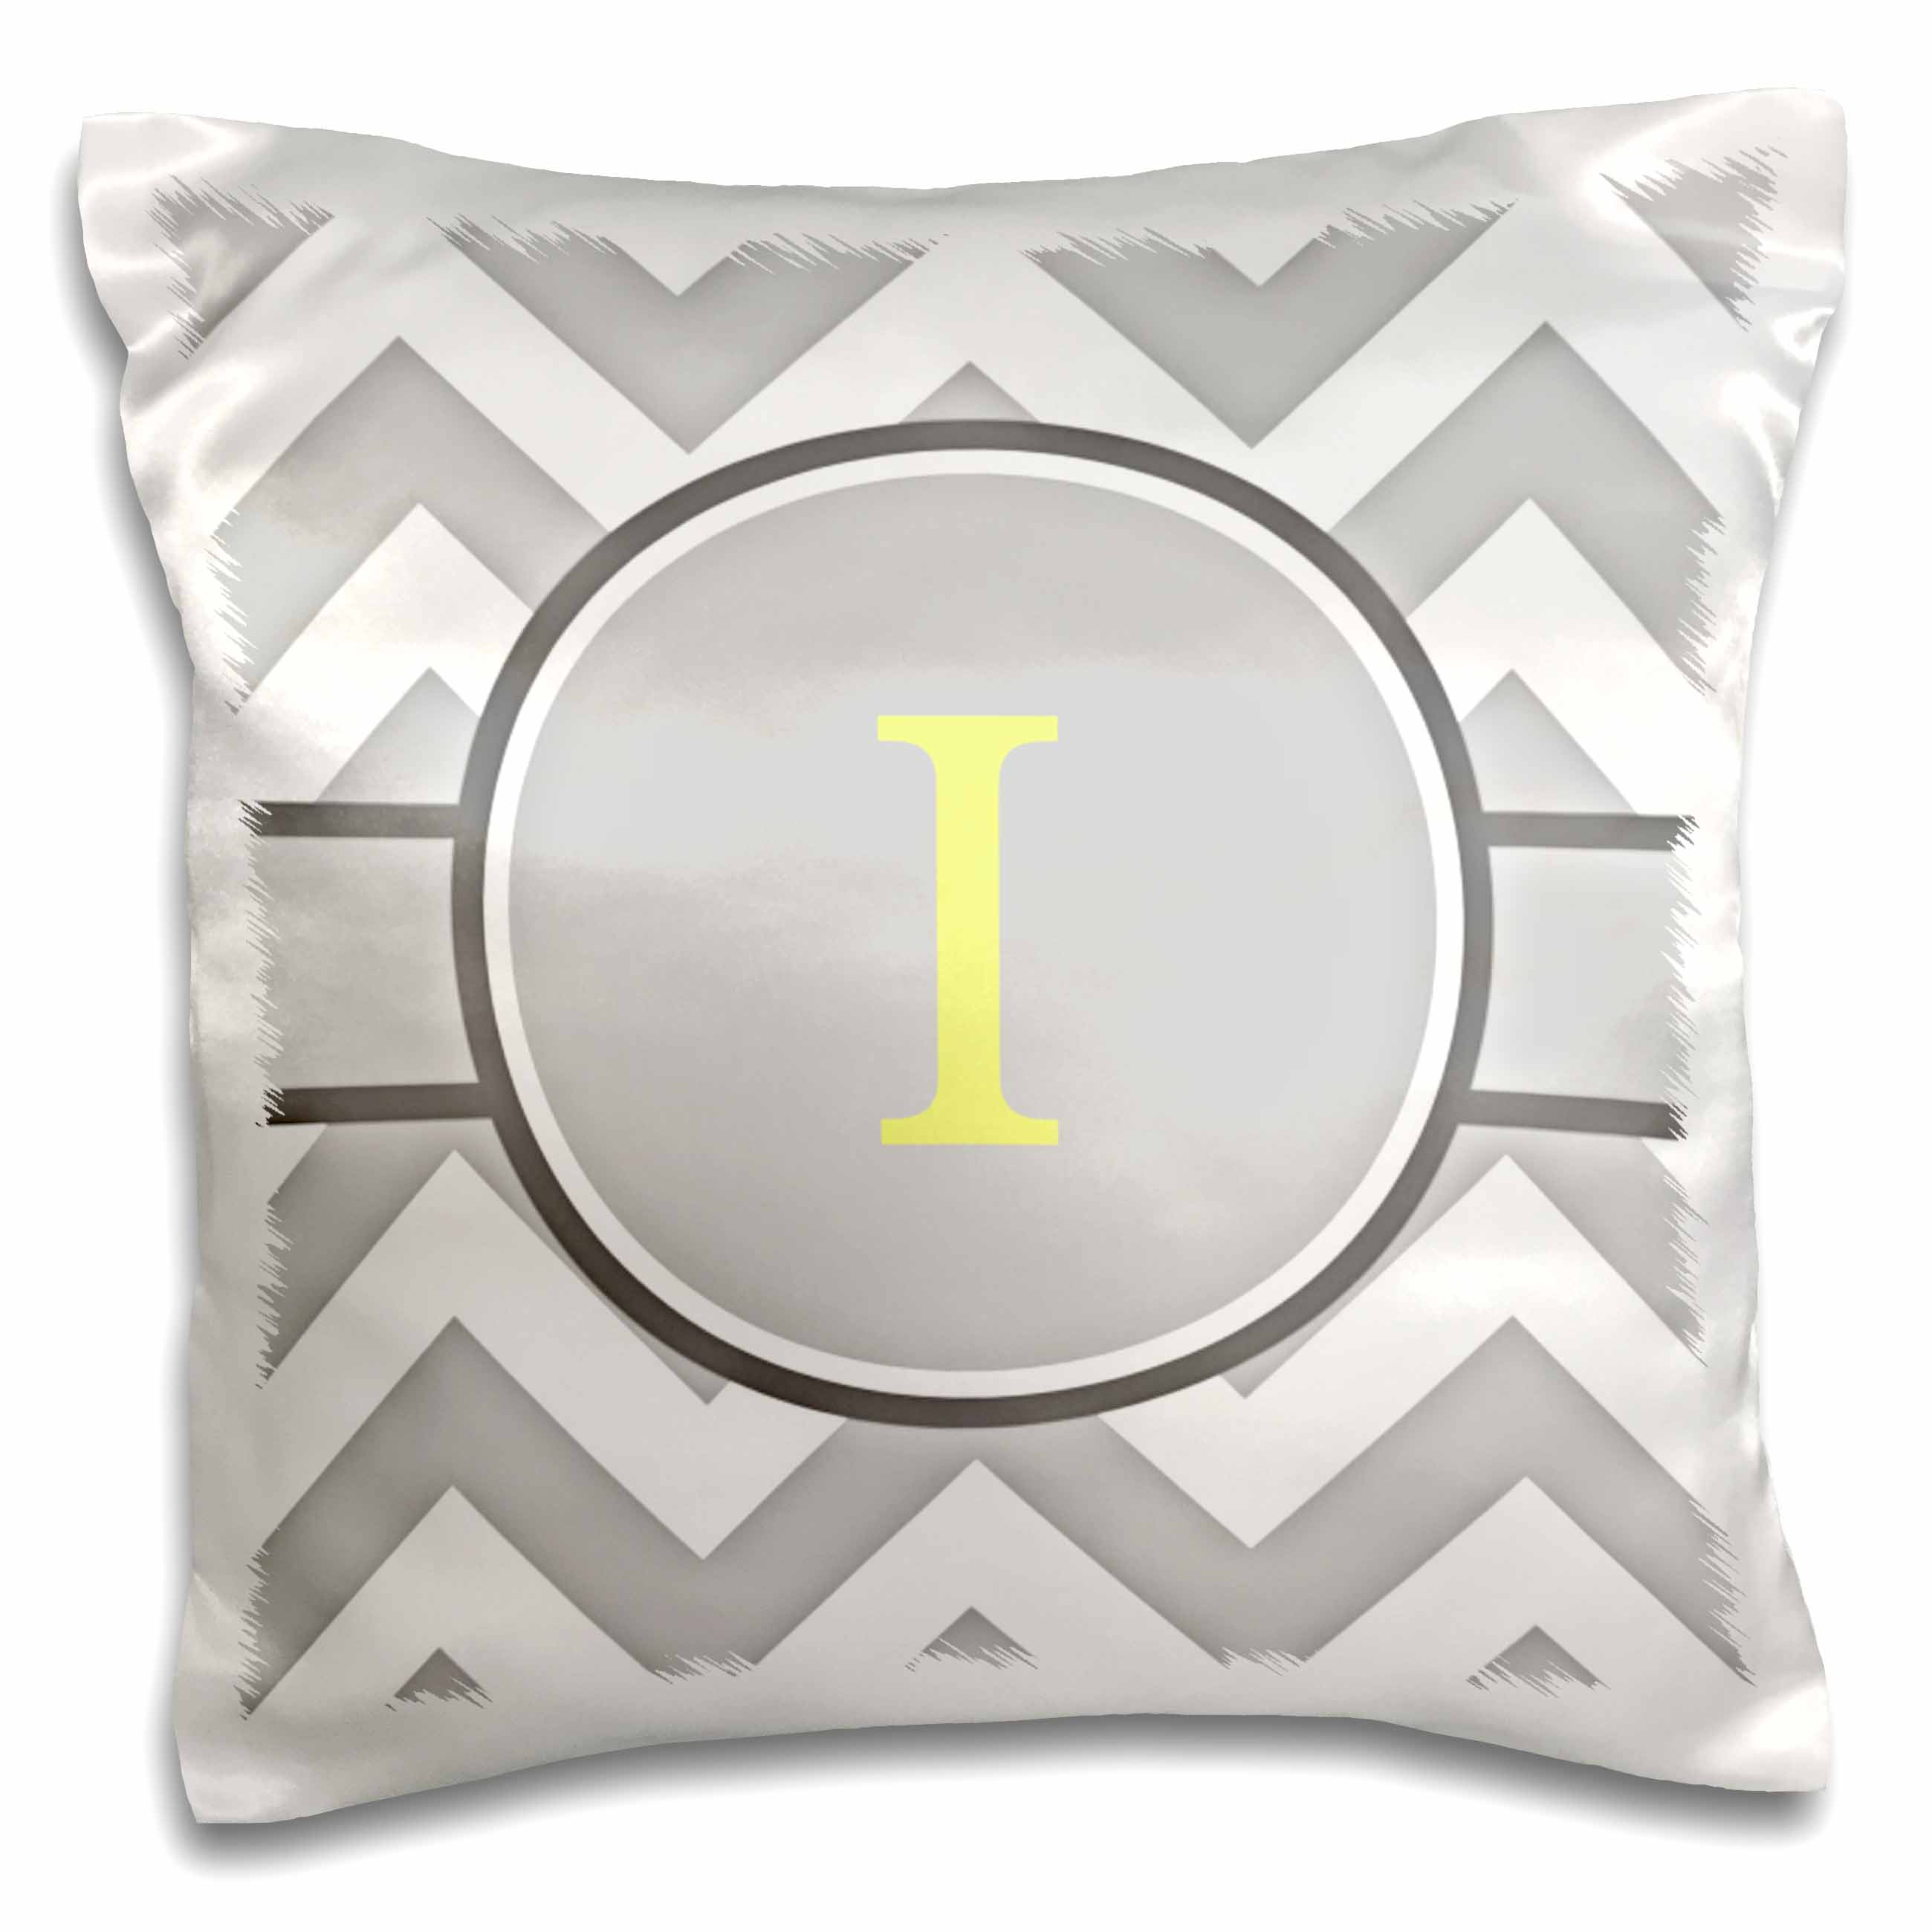 3dRose Grey and white chevron with yellow monogram initial I, Pillow Case, 16 by 16-inch